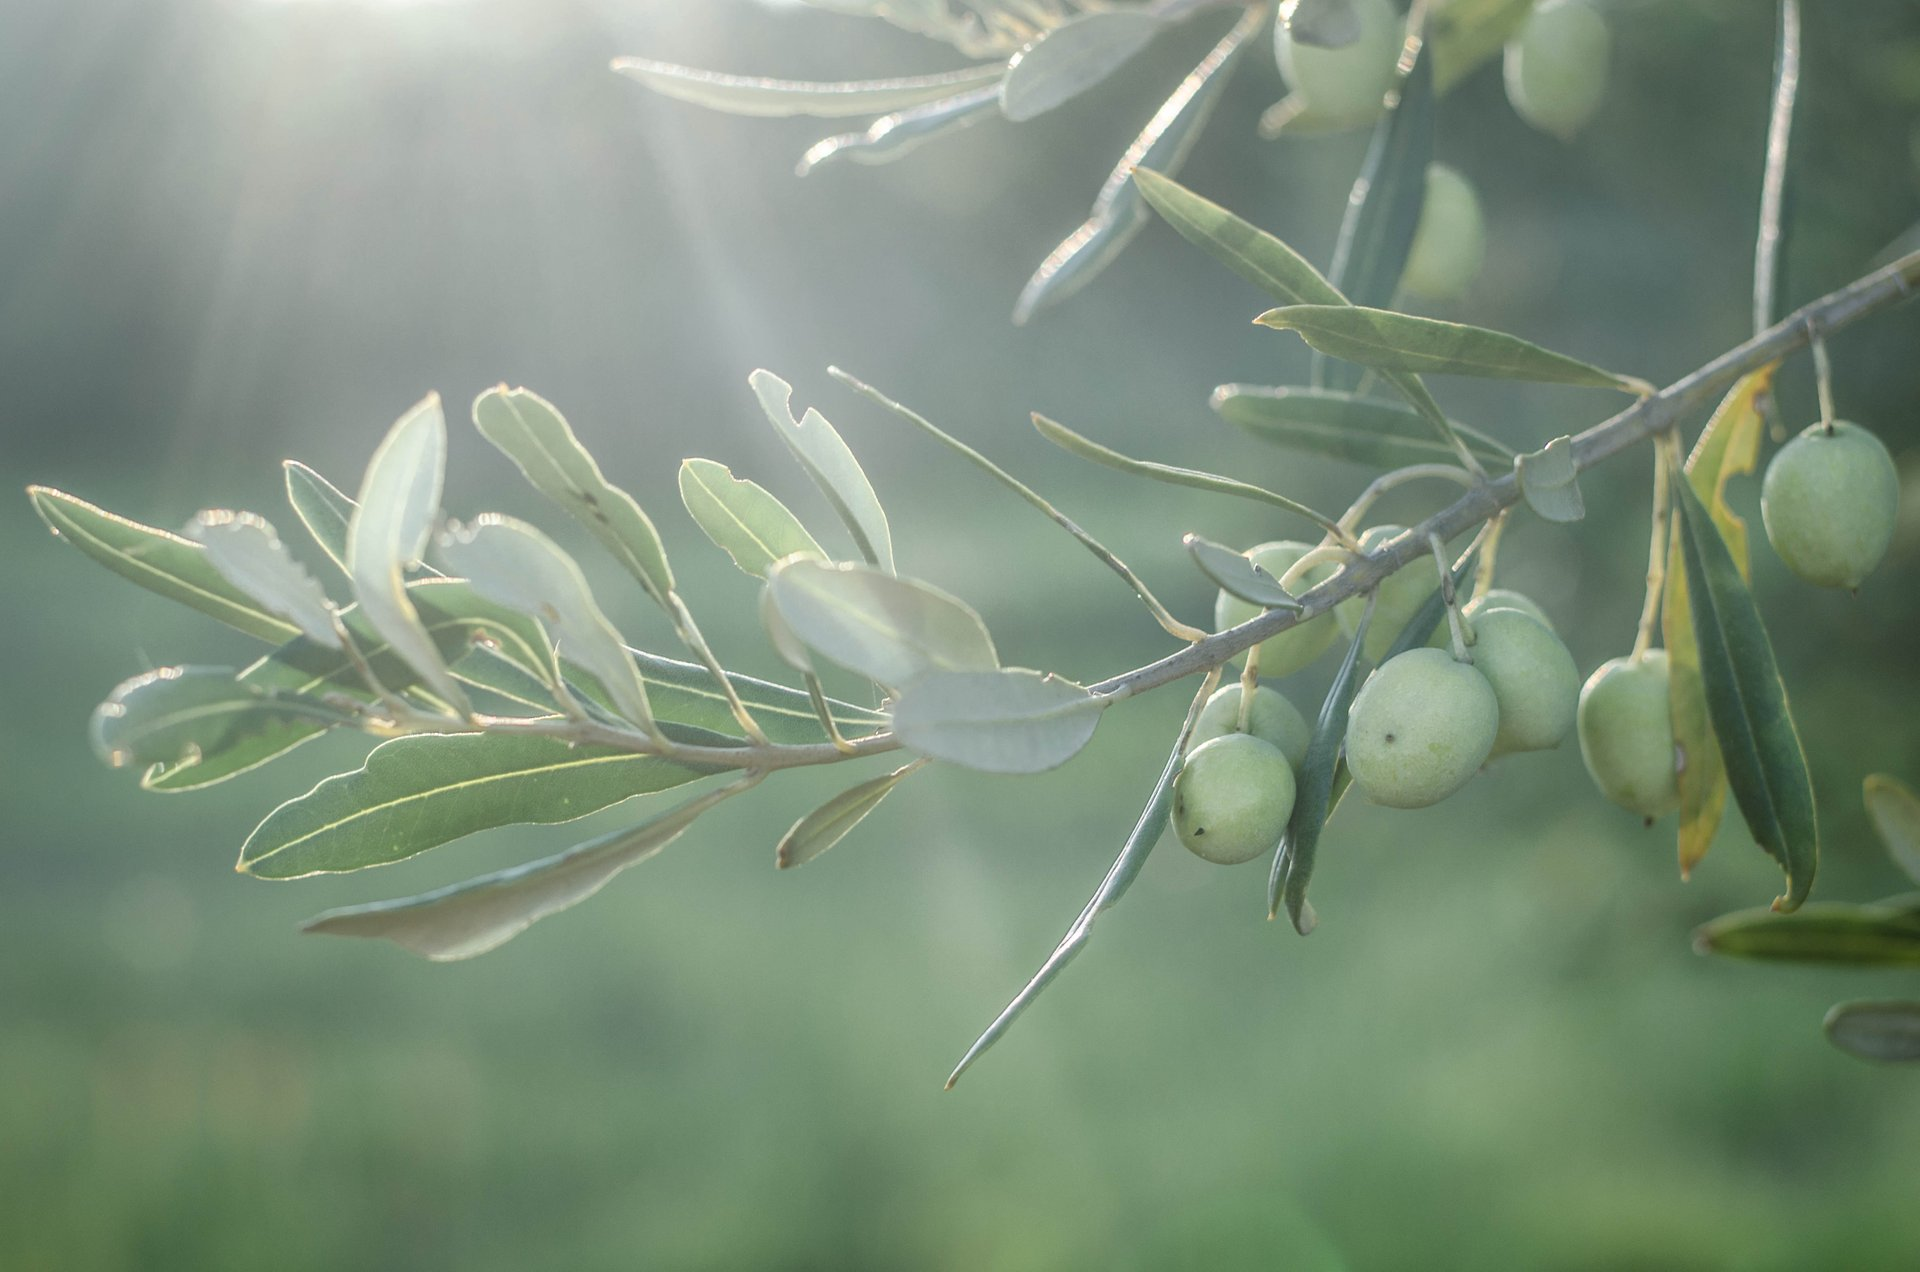 Olive Harvest in Croatia 2019 - Best Time